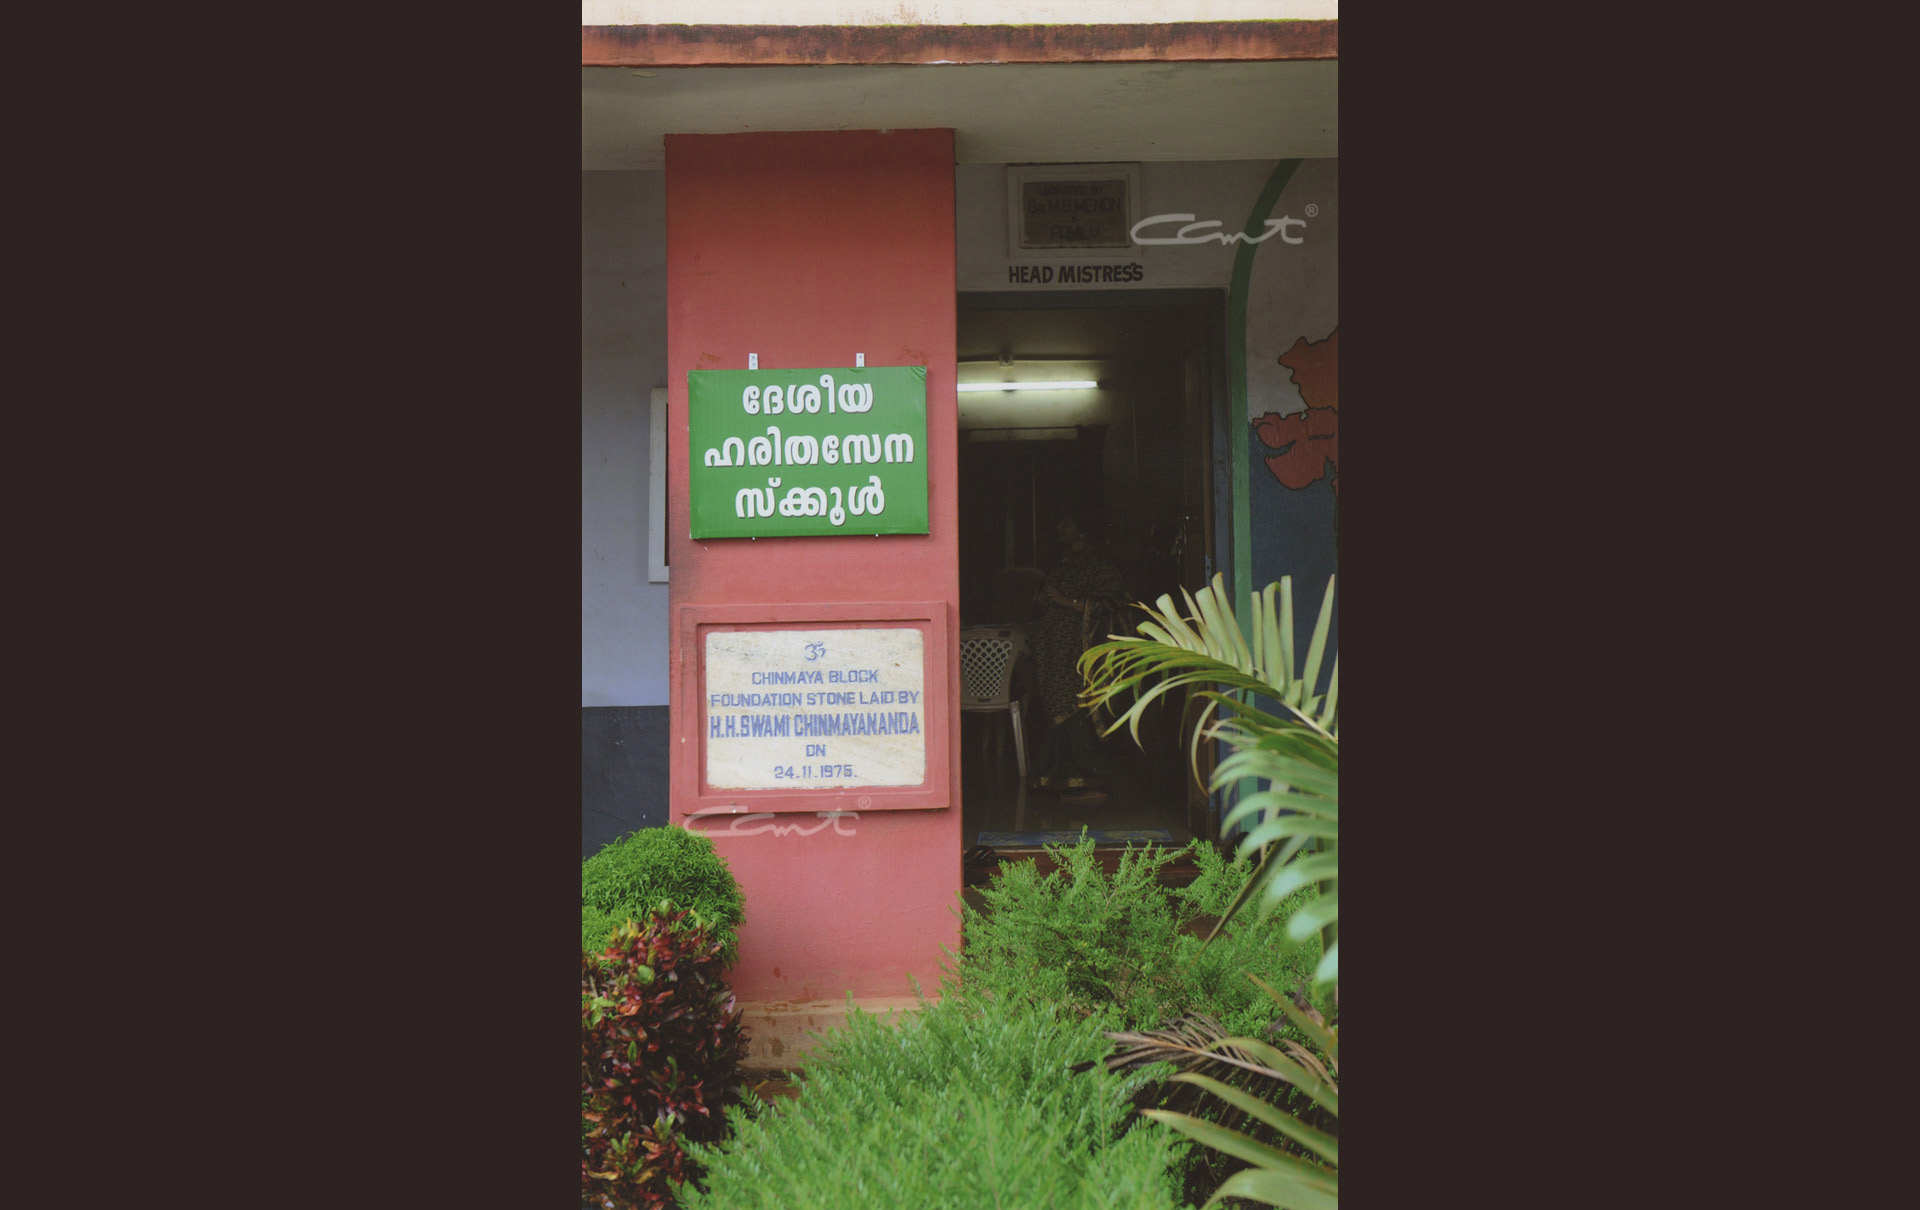 Vivekodayam Boys' High School, Thrissur dedicated a block to Swami Chinmayananda.